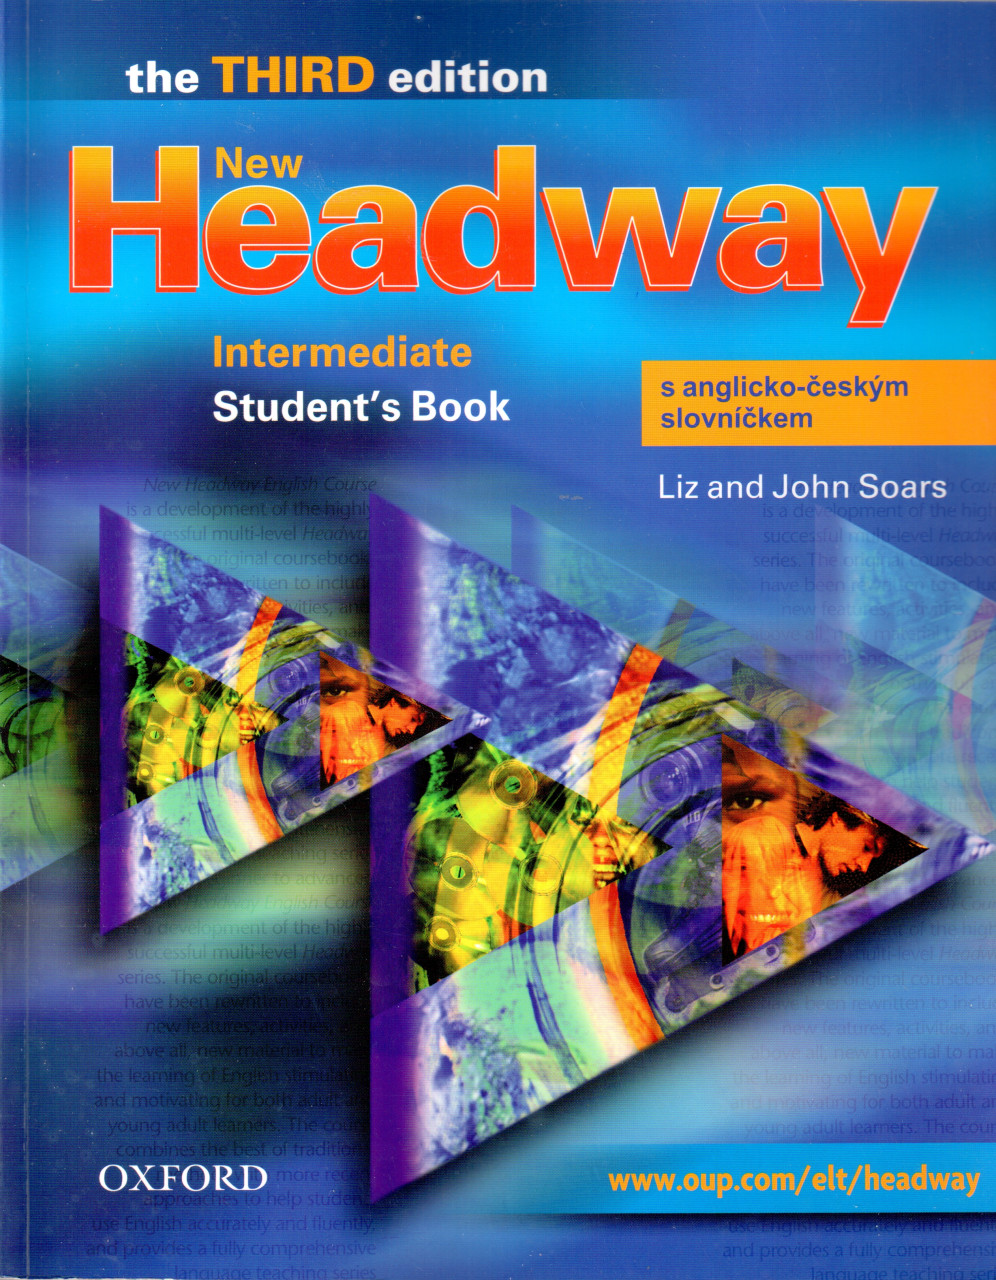 New Headway : Intermediate Student's Book (3rd edition)